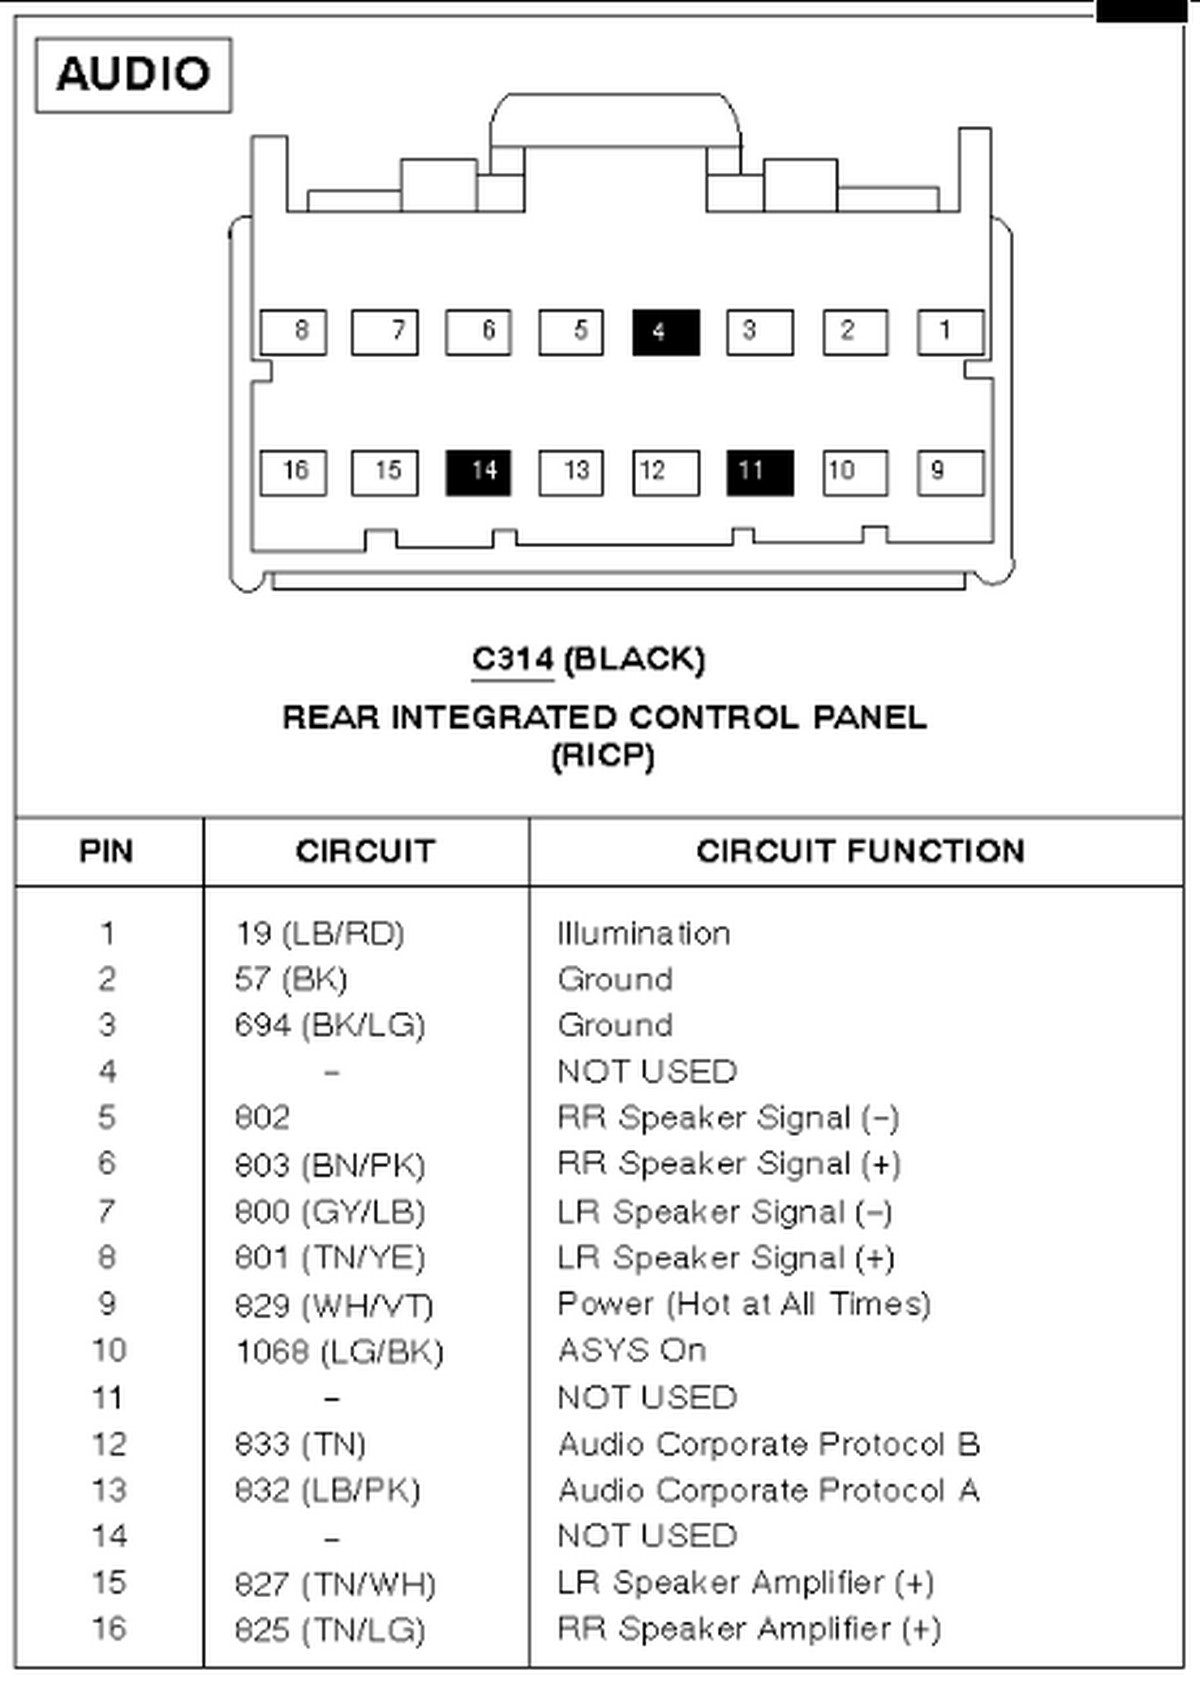 ford car radio stereo audio wiring diagram autoradio 2002 f150 radio wire diagram 2002 f150 radio wire diagram 2002 f150 radio wire diagram 2002 f150 radio wire diagram